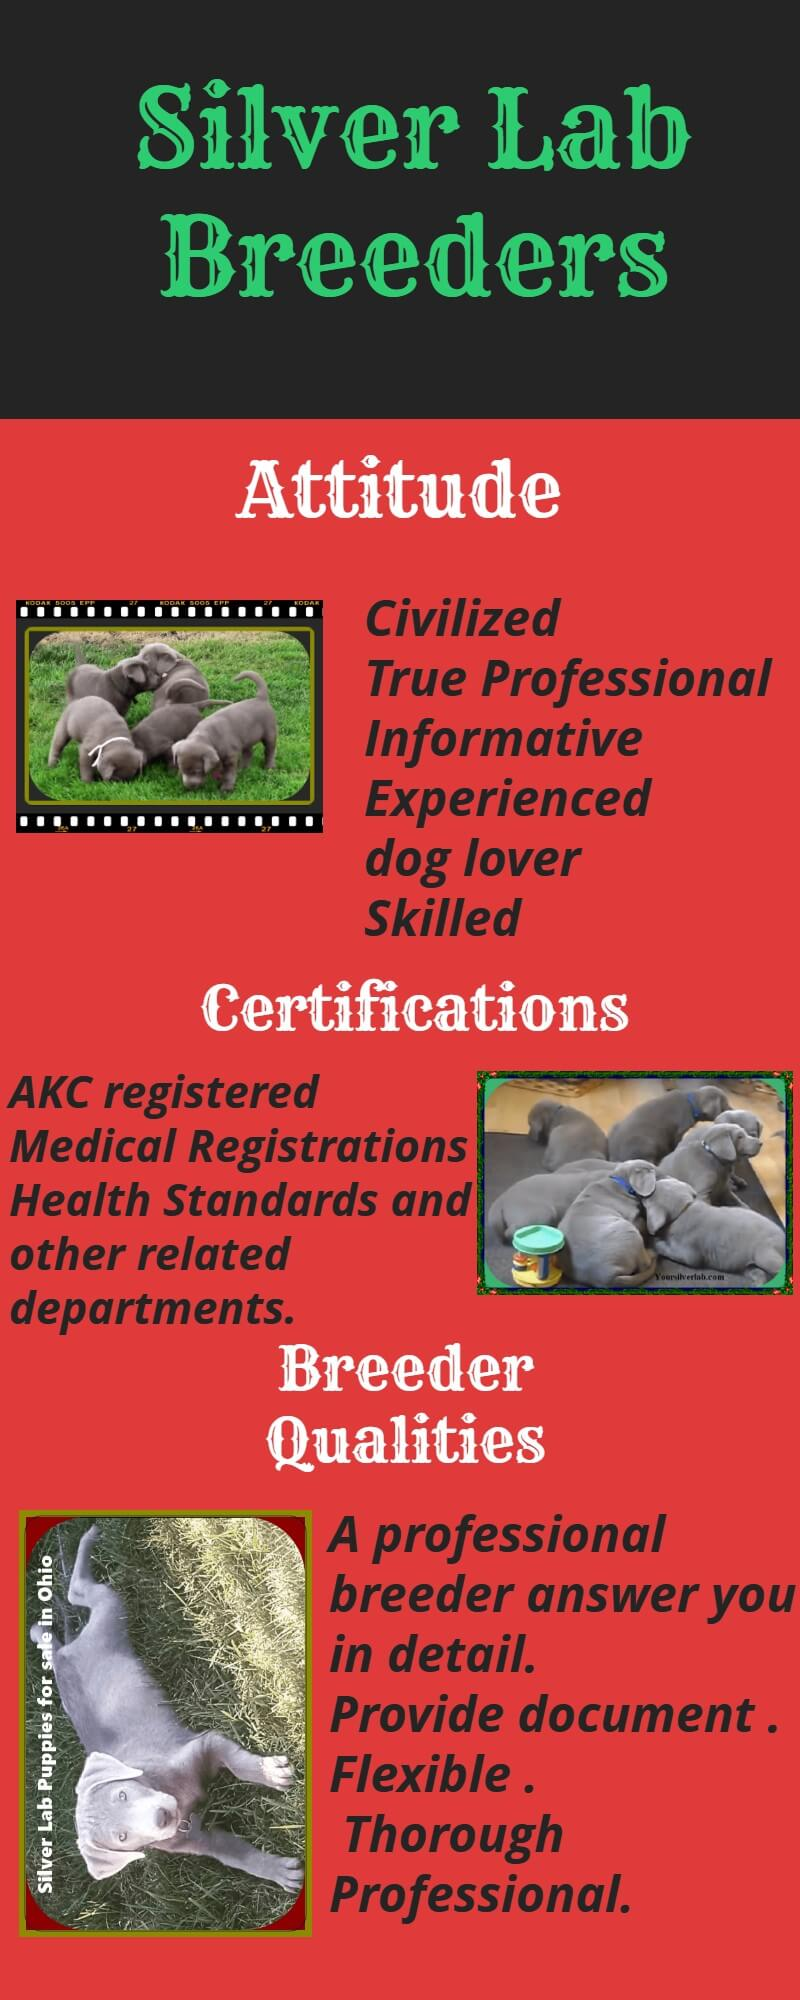 Silverlab Breeders Question points